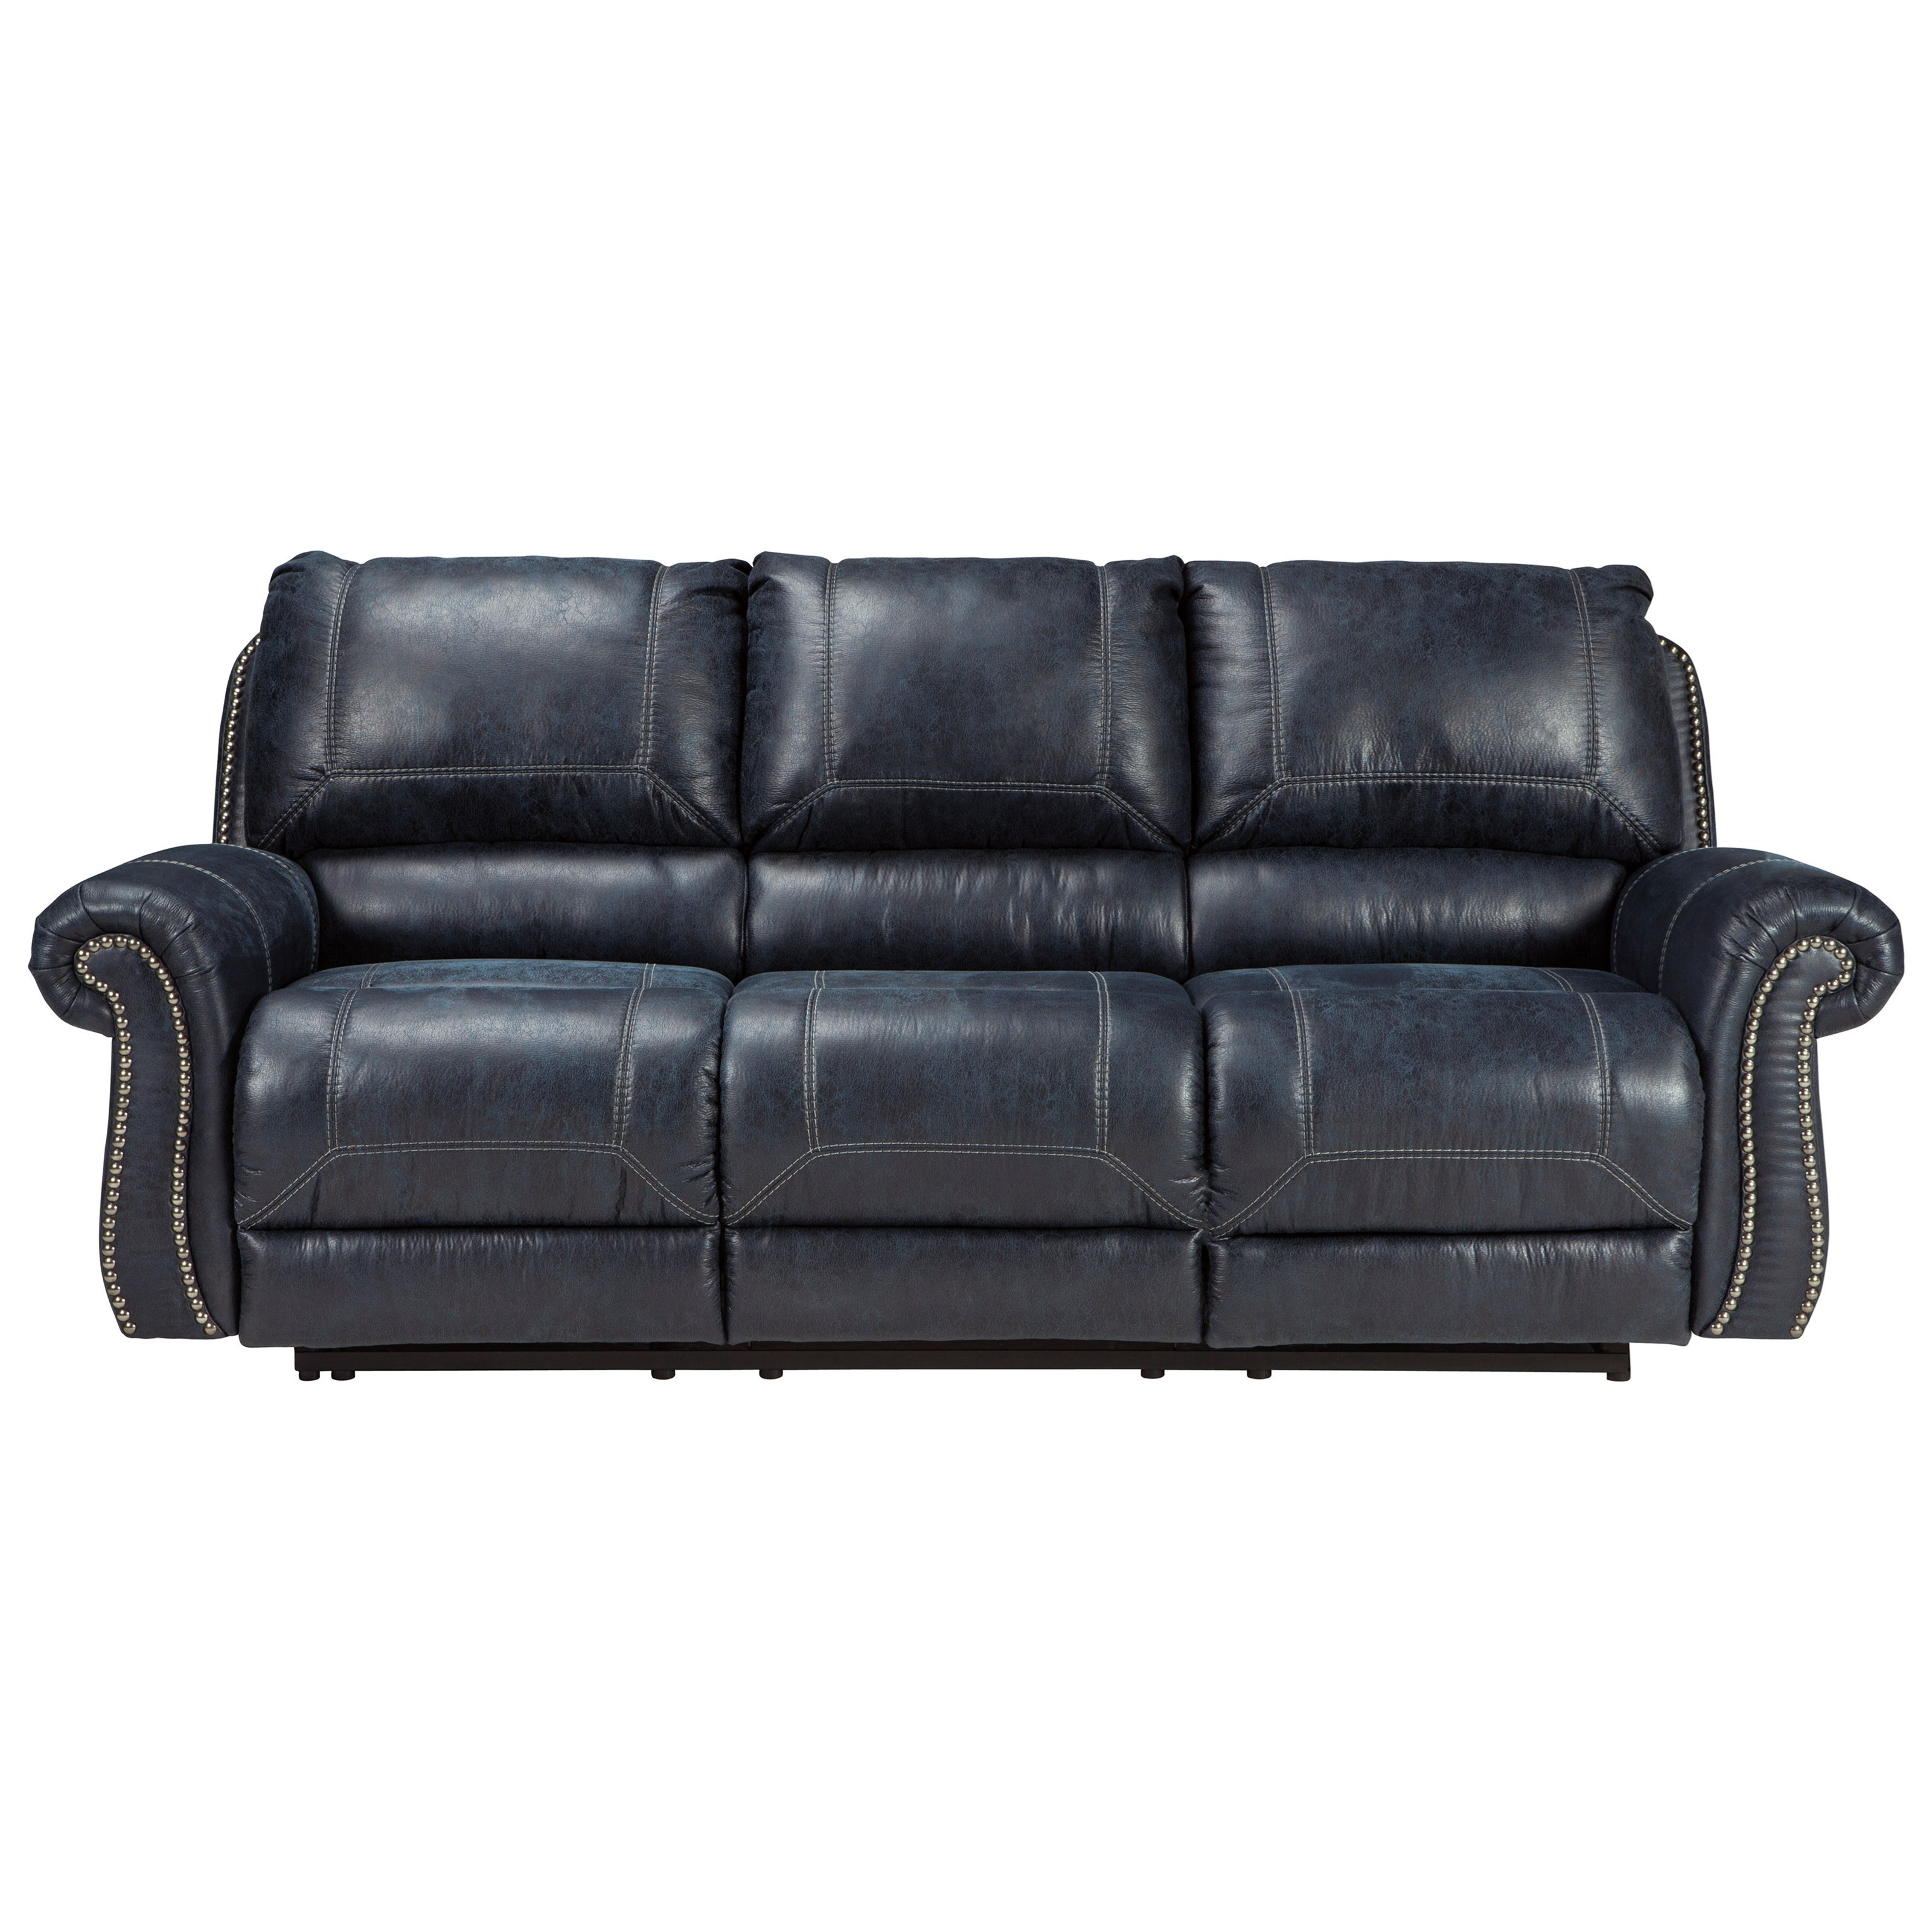 Signature Design by Ashley Milhaven Reclining Sofa - Item Number: 6330488